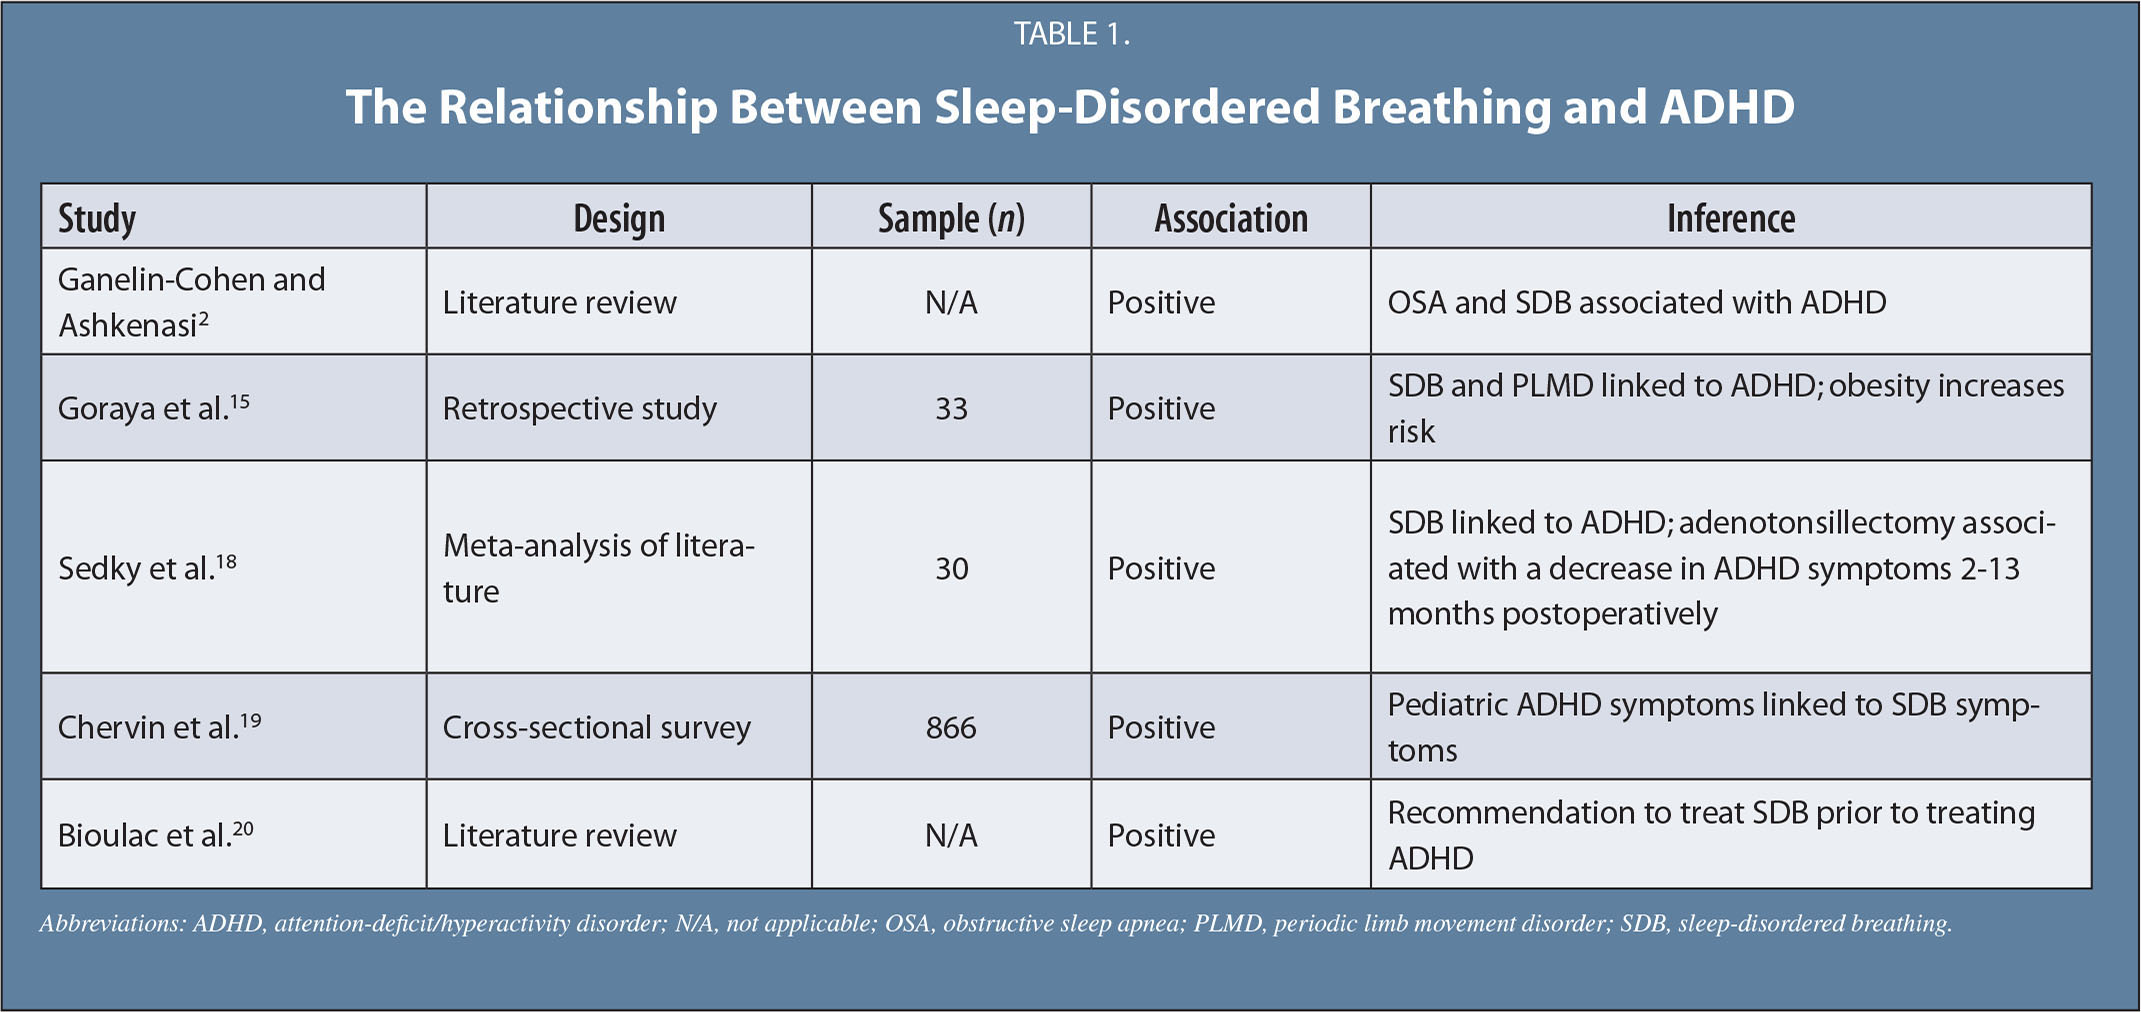 The Relationship Between Sleep-Disordered Breathing and ADHD